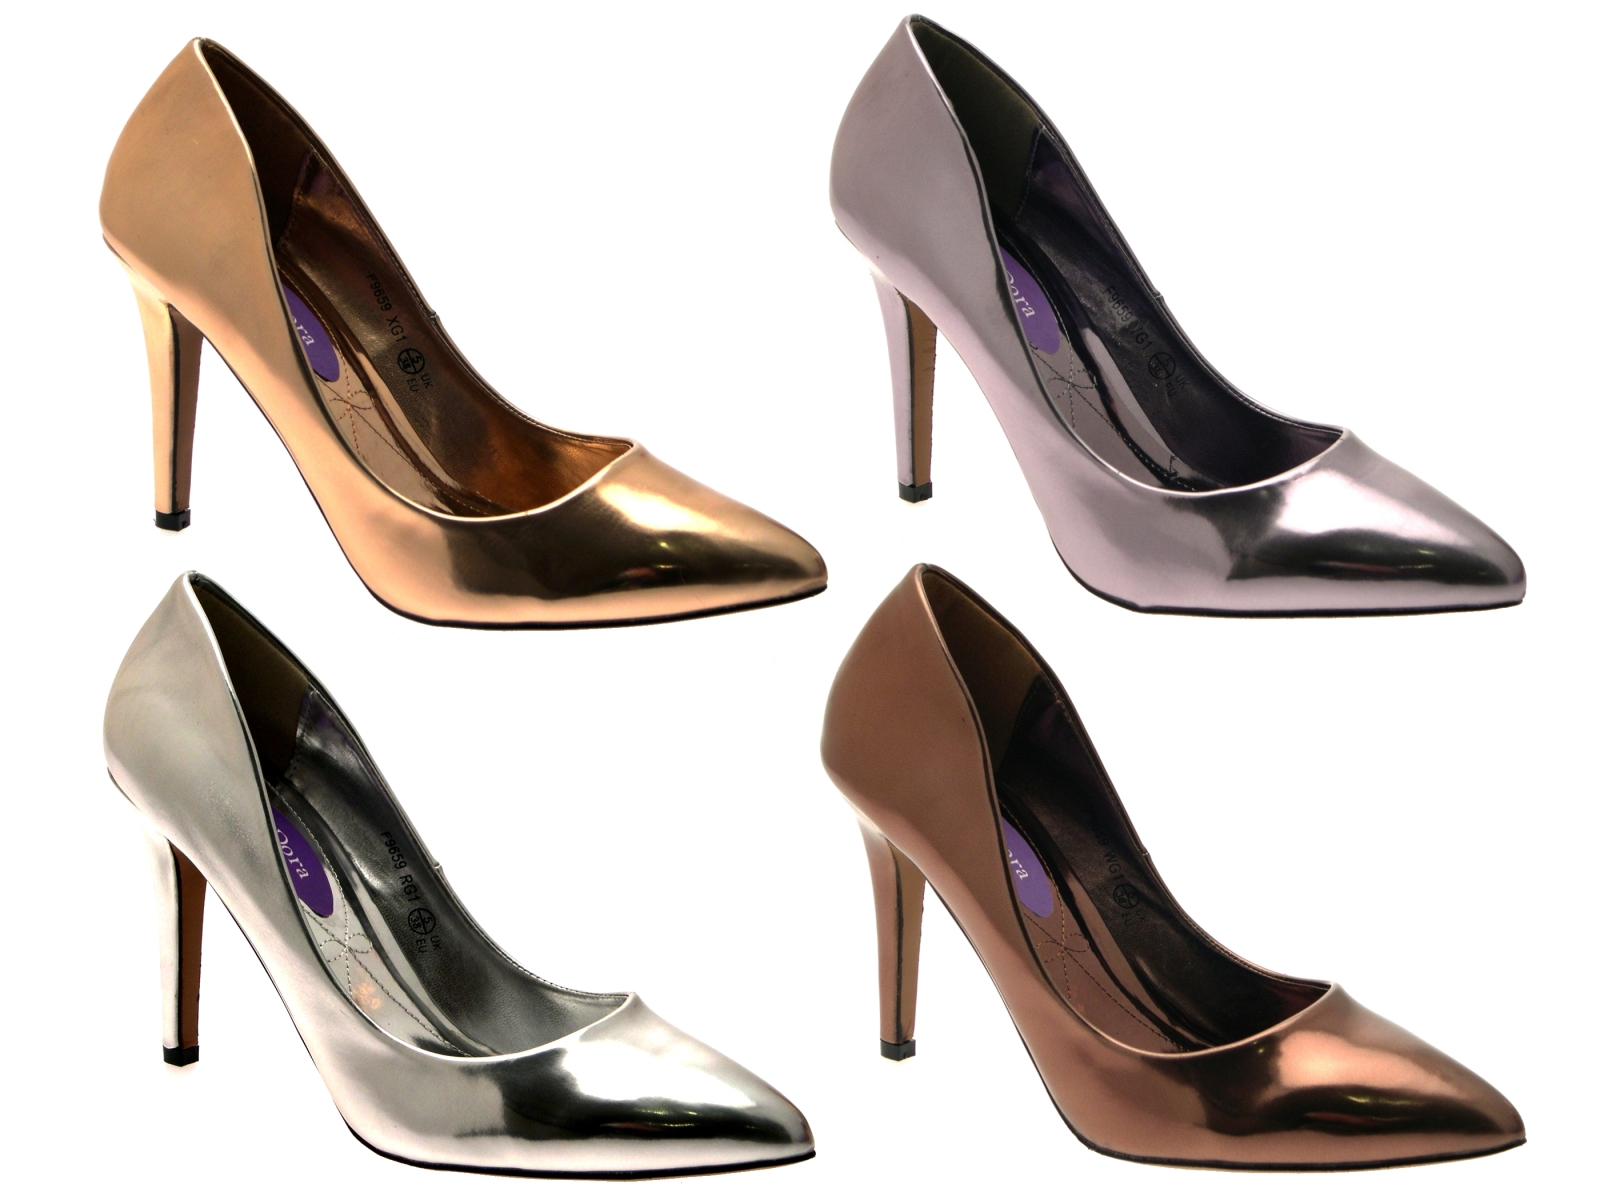 WOMENS METALLIC POINTED TOE COURT STILETTO HIGH HEELS LADIES SHOES UK SIZE 3 - 8